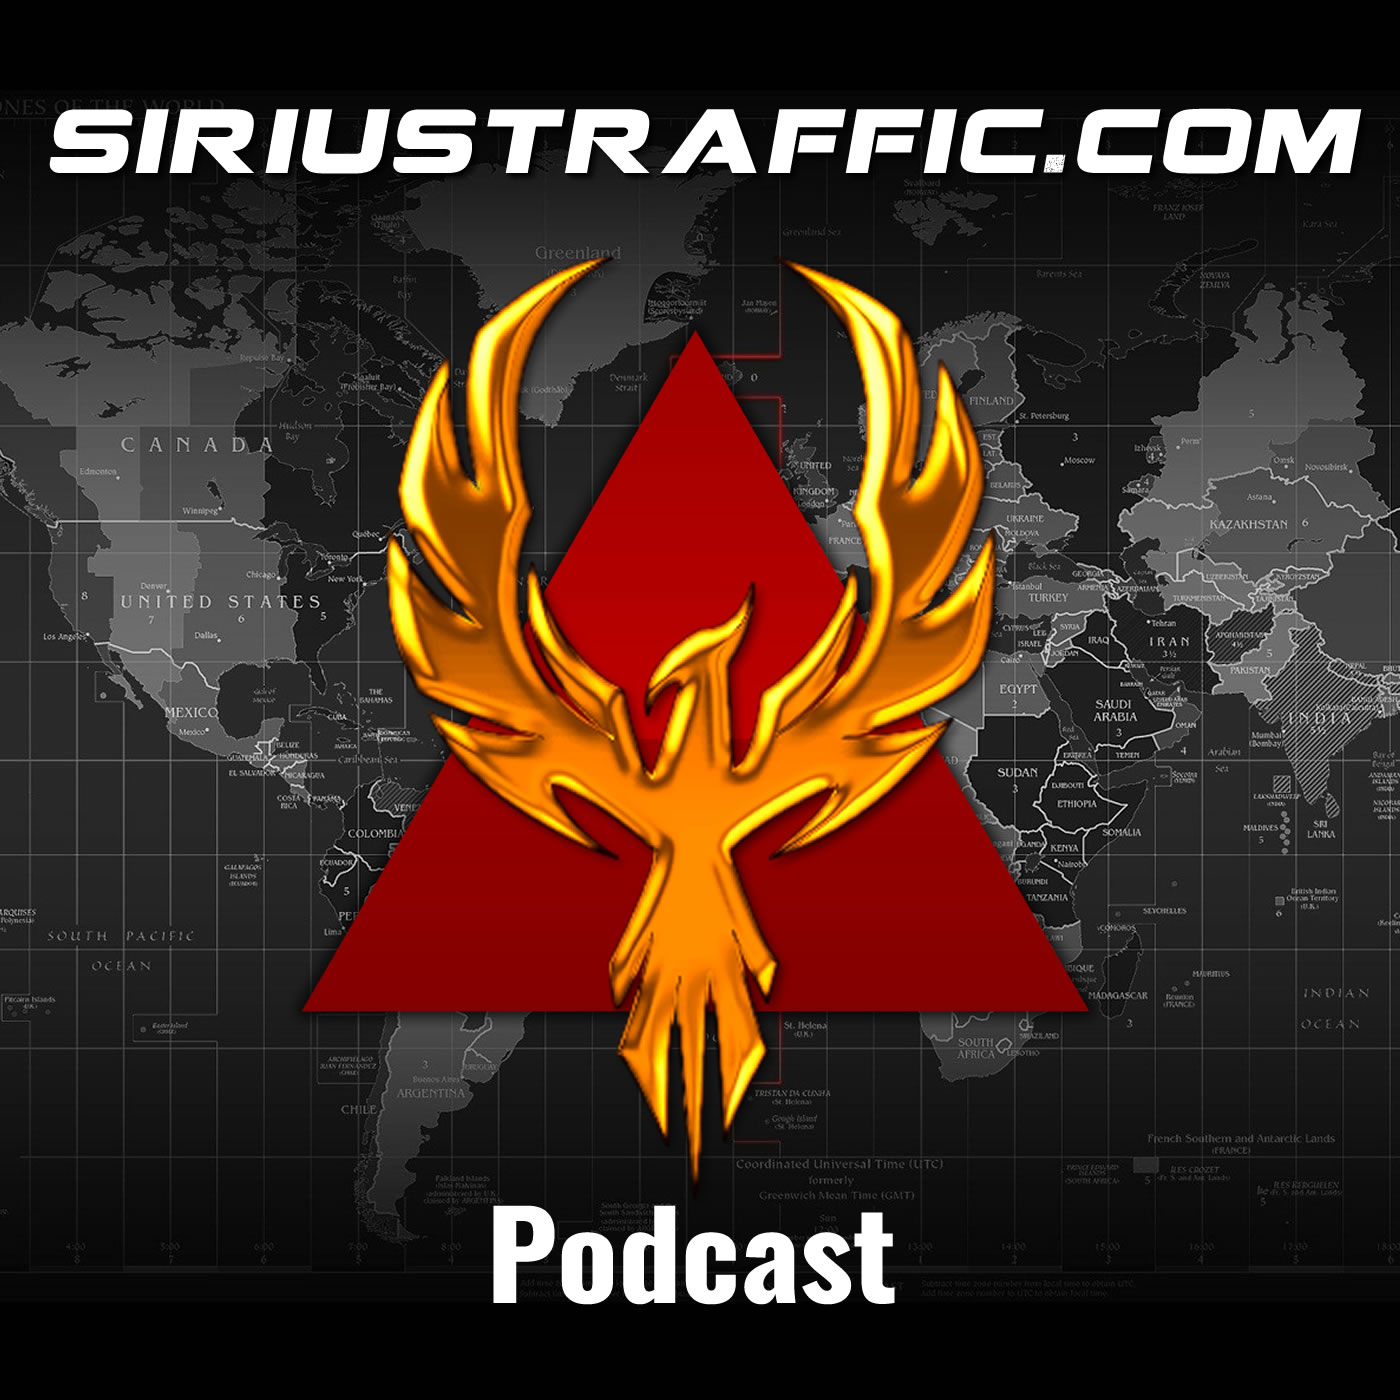 SiriusTraffic.com Podcast